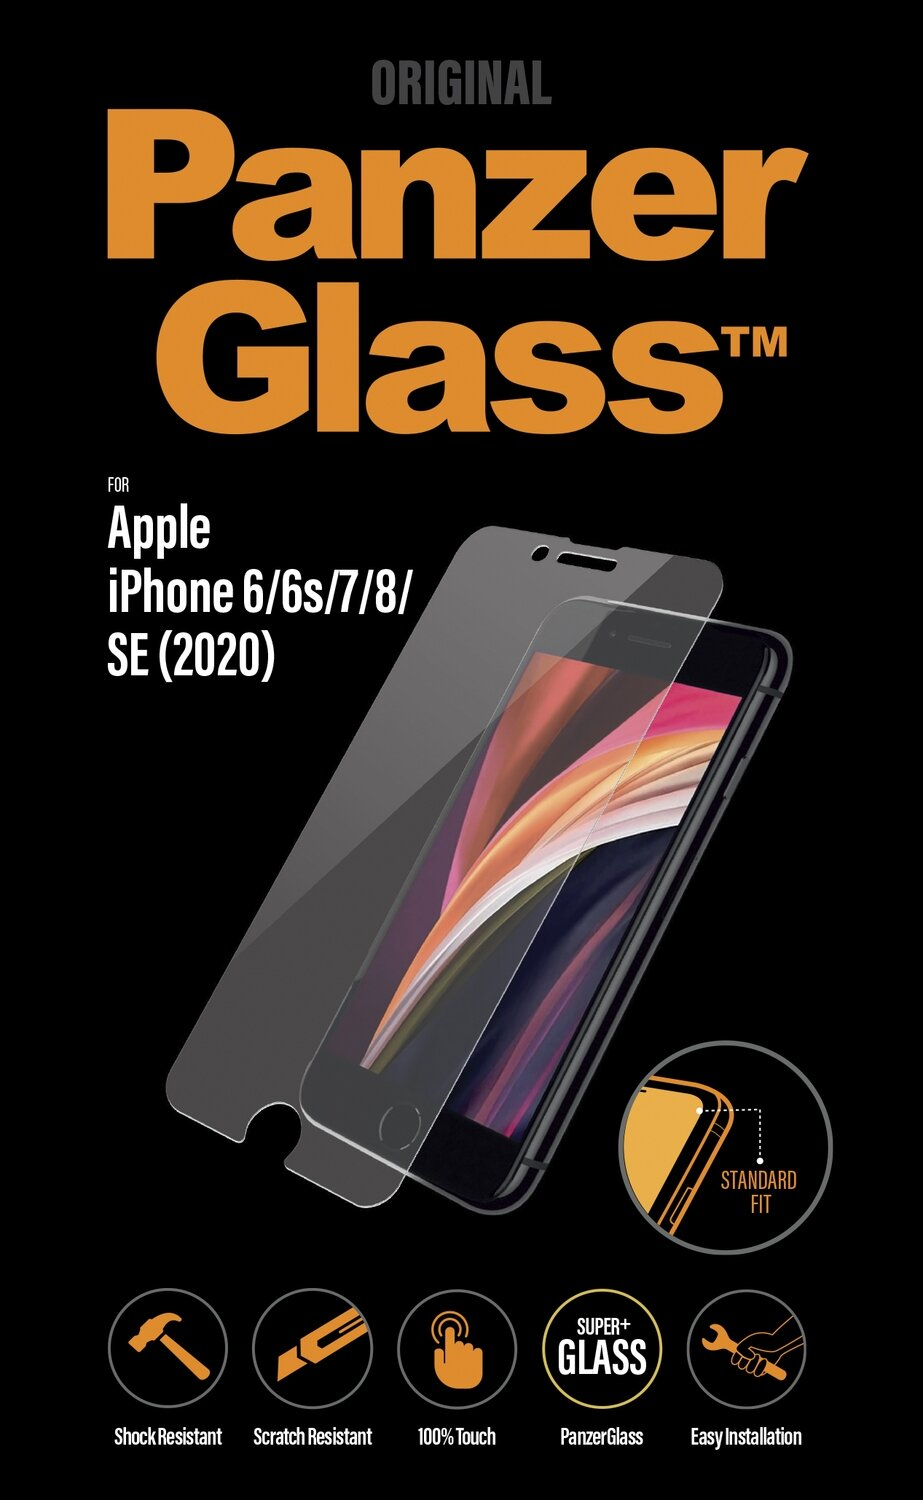 PanzerGlass Screen Protector for IPhone 6/6s/7/8/SE 2 clear